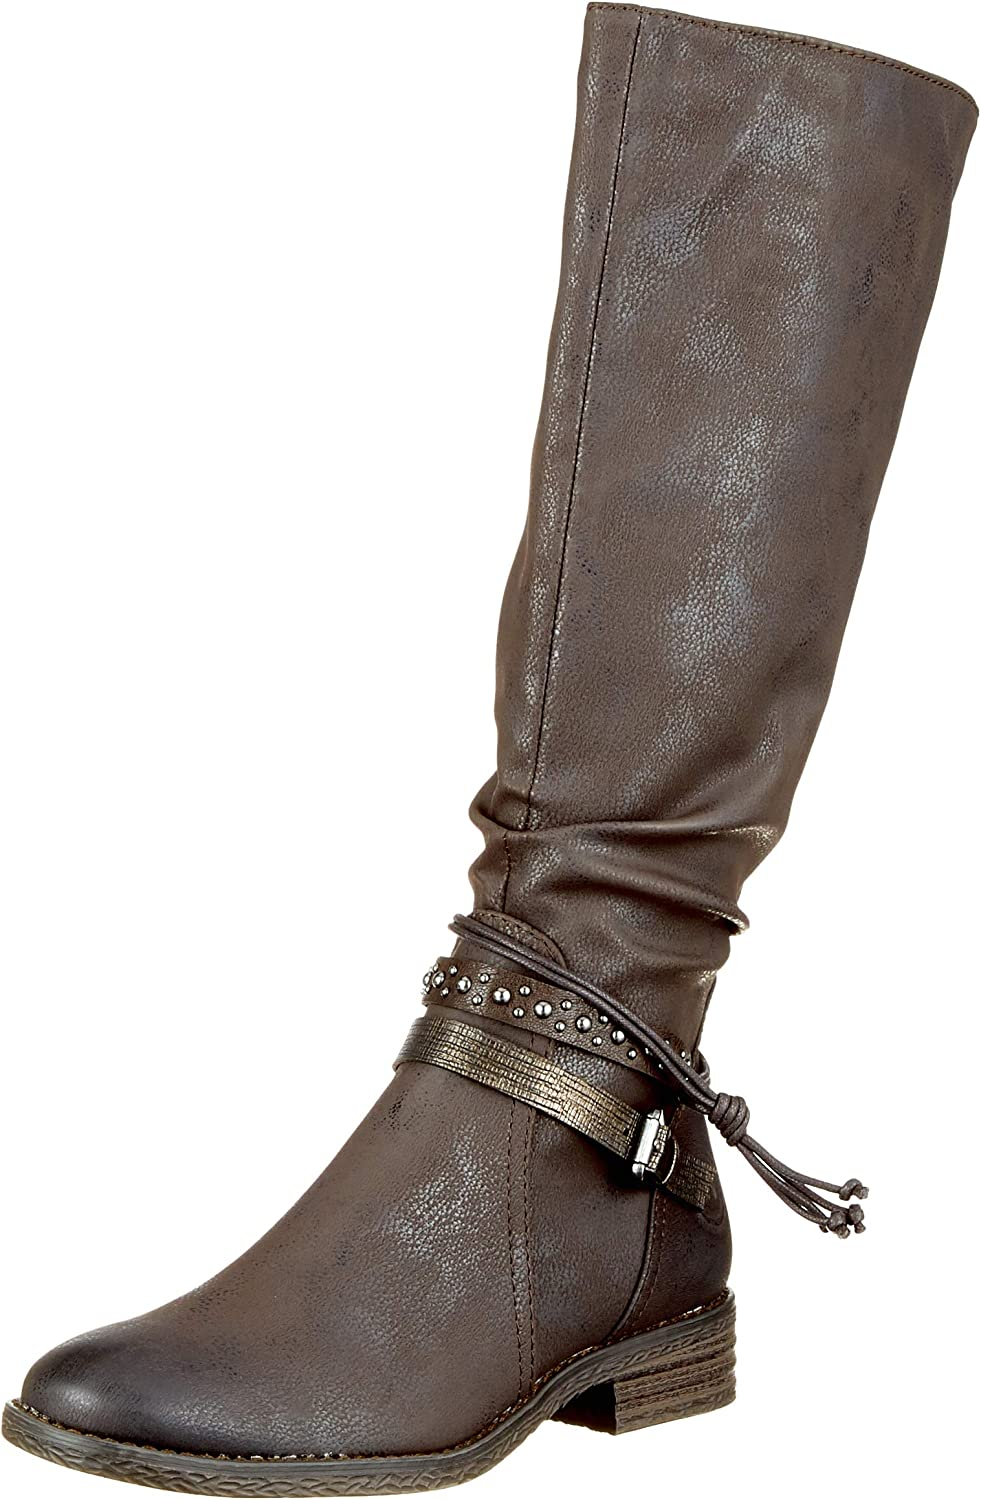 Marco Tozzi Women's Detailed Mocca Low Heel Mid-Calf Boot